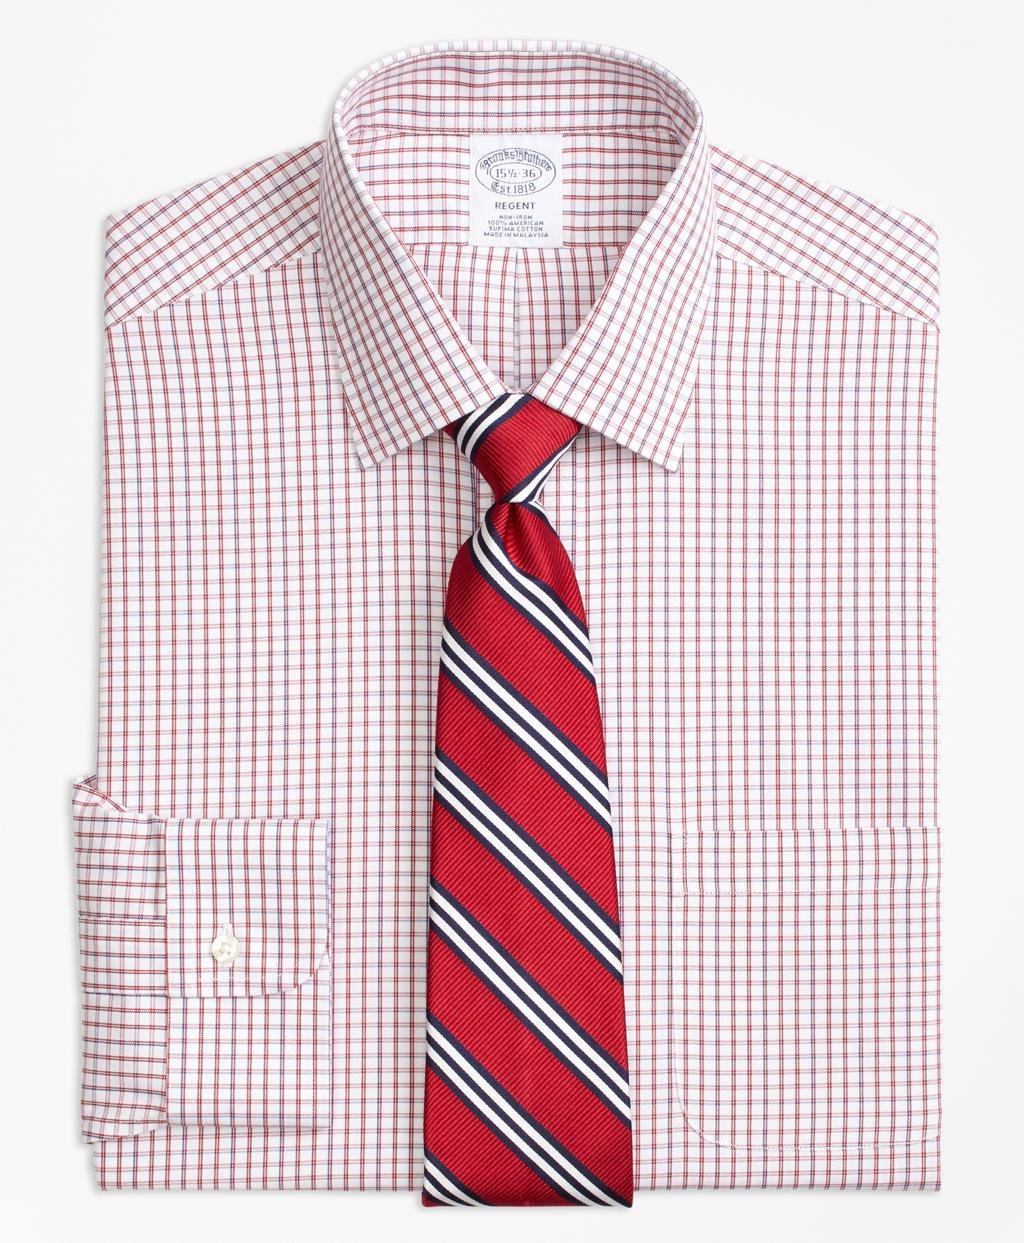 Lyst Brooks Brothers Regent Fitted Dress Shirt Non Iron